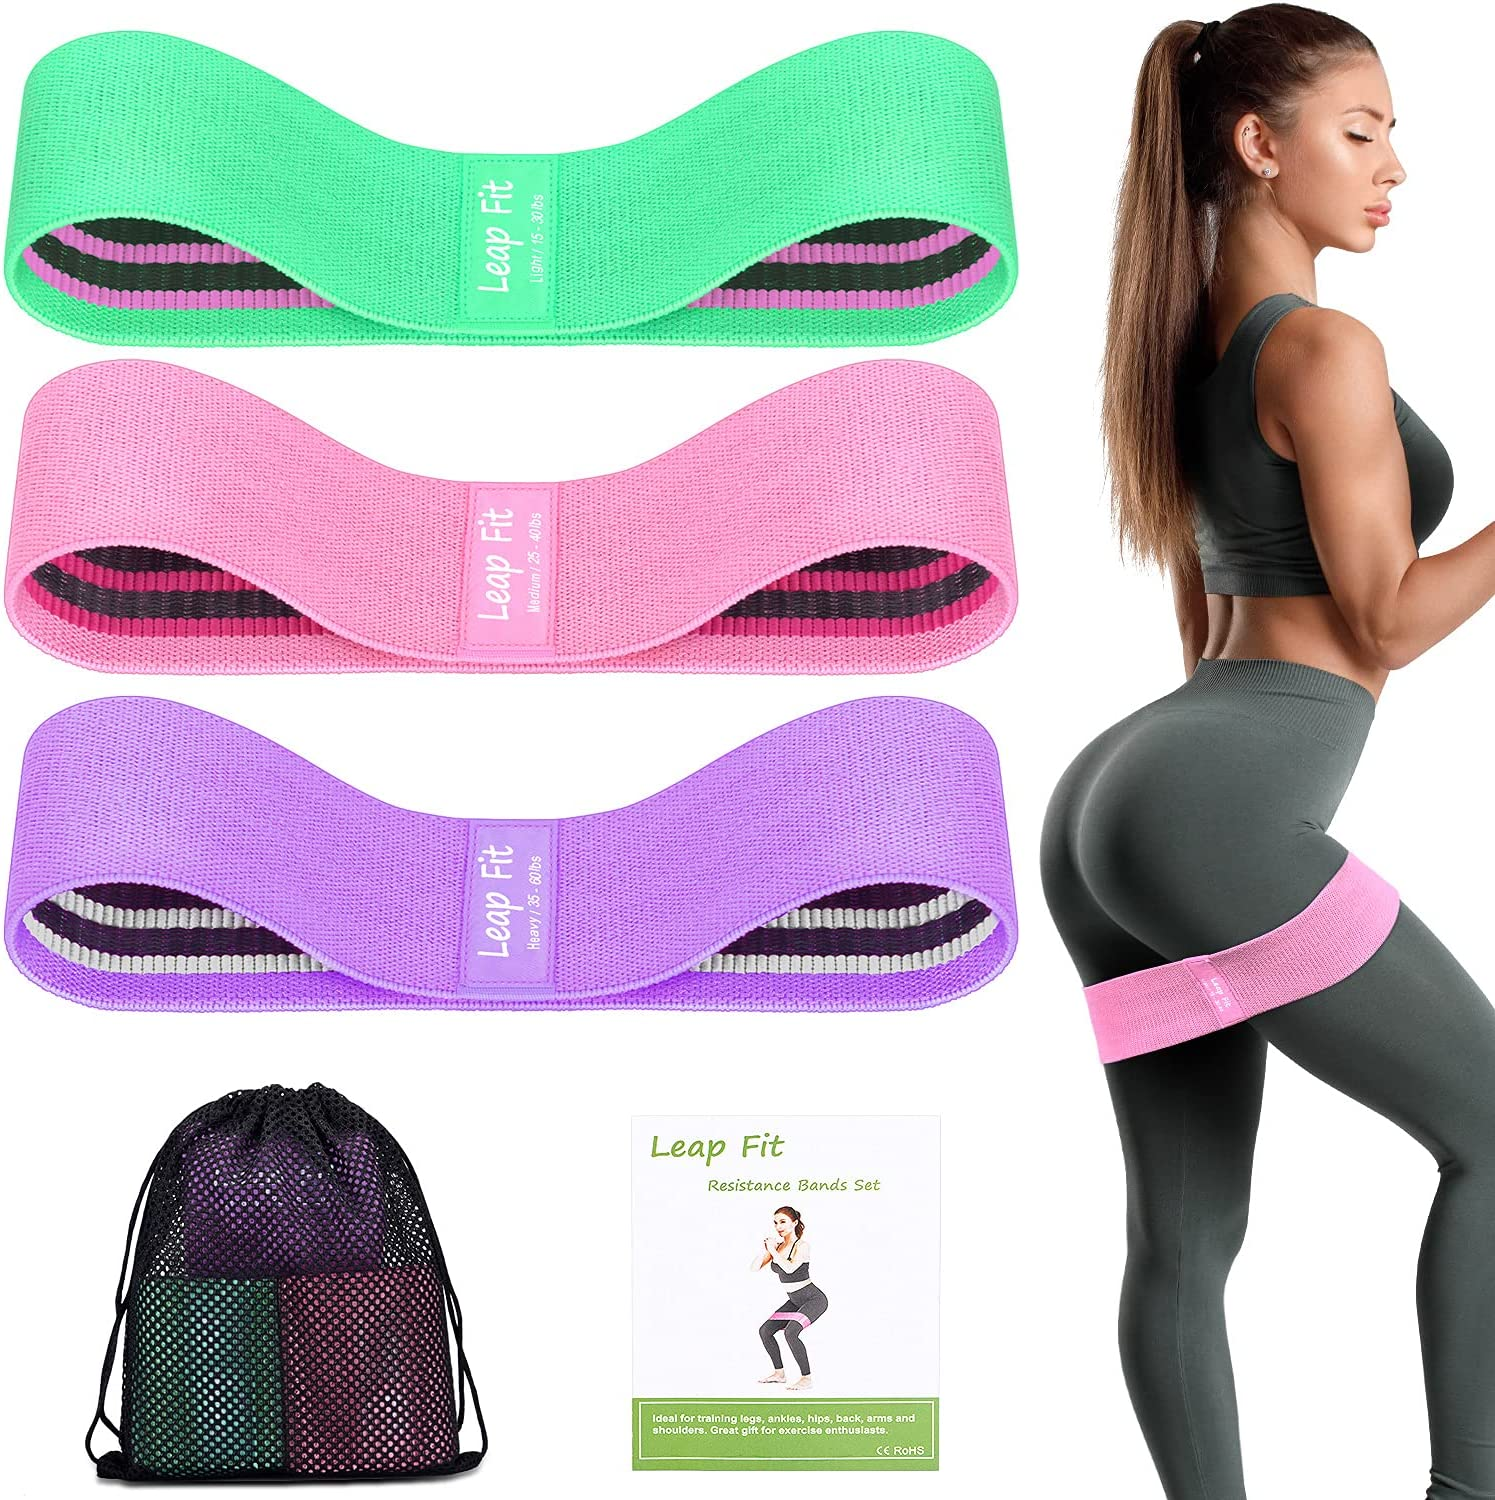 Max 53% OFF Resistance Bands for Women Men Leap Booty Fit Exerci Inventory cleanup selling sale Premium